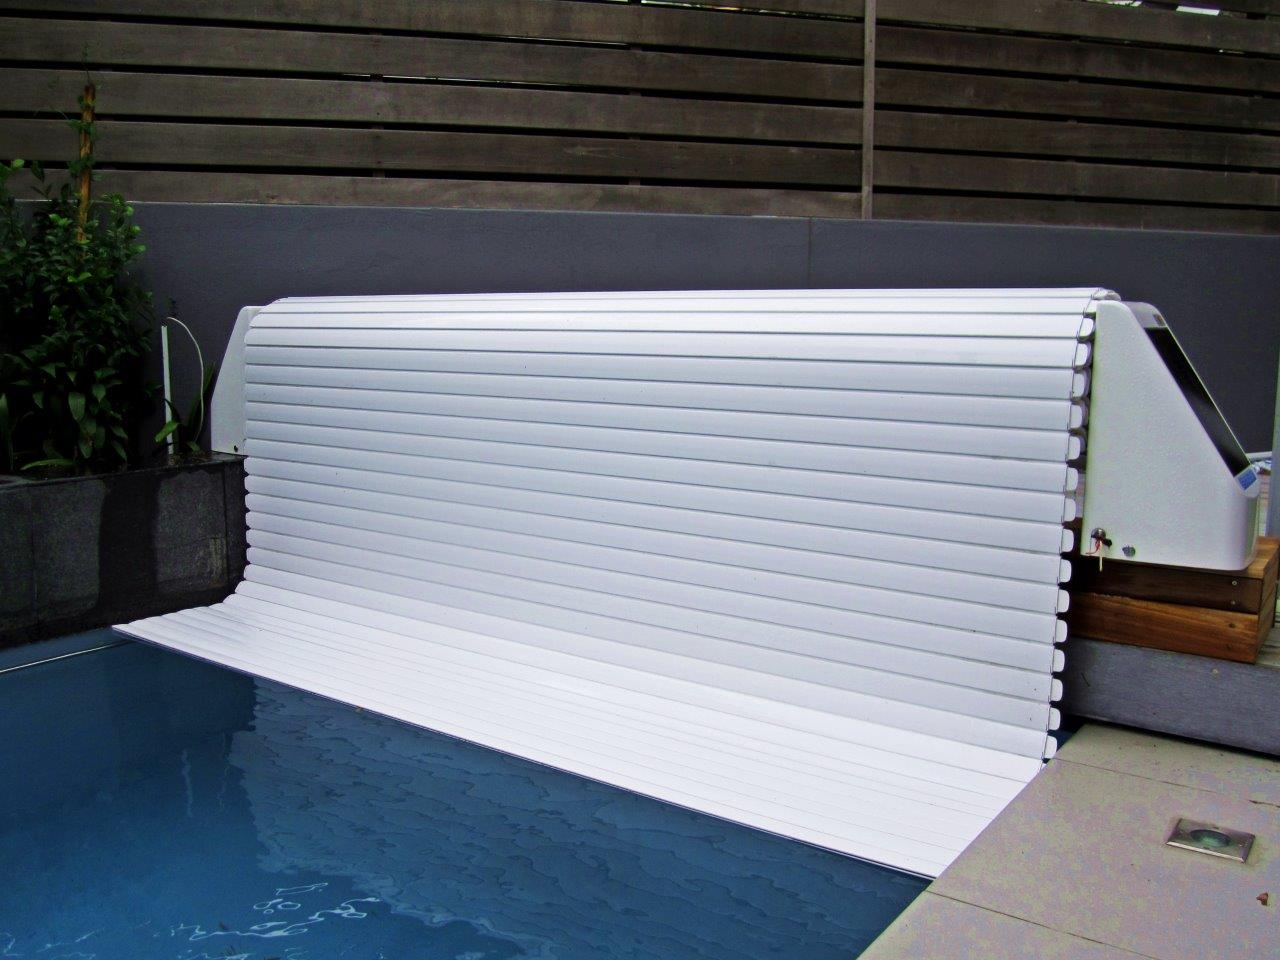 Jacuzzi Pool Covers Solar Powered Slatted Cover Powerplastics Pool Covers